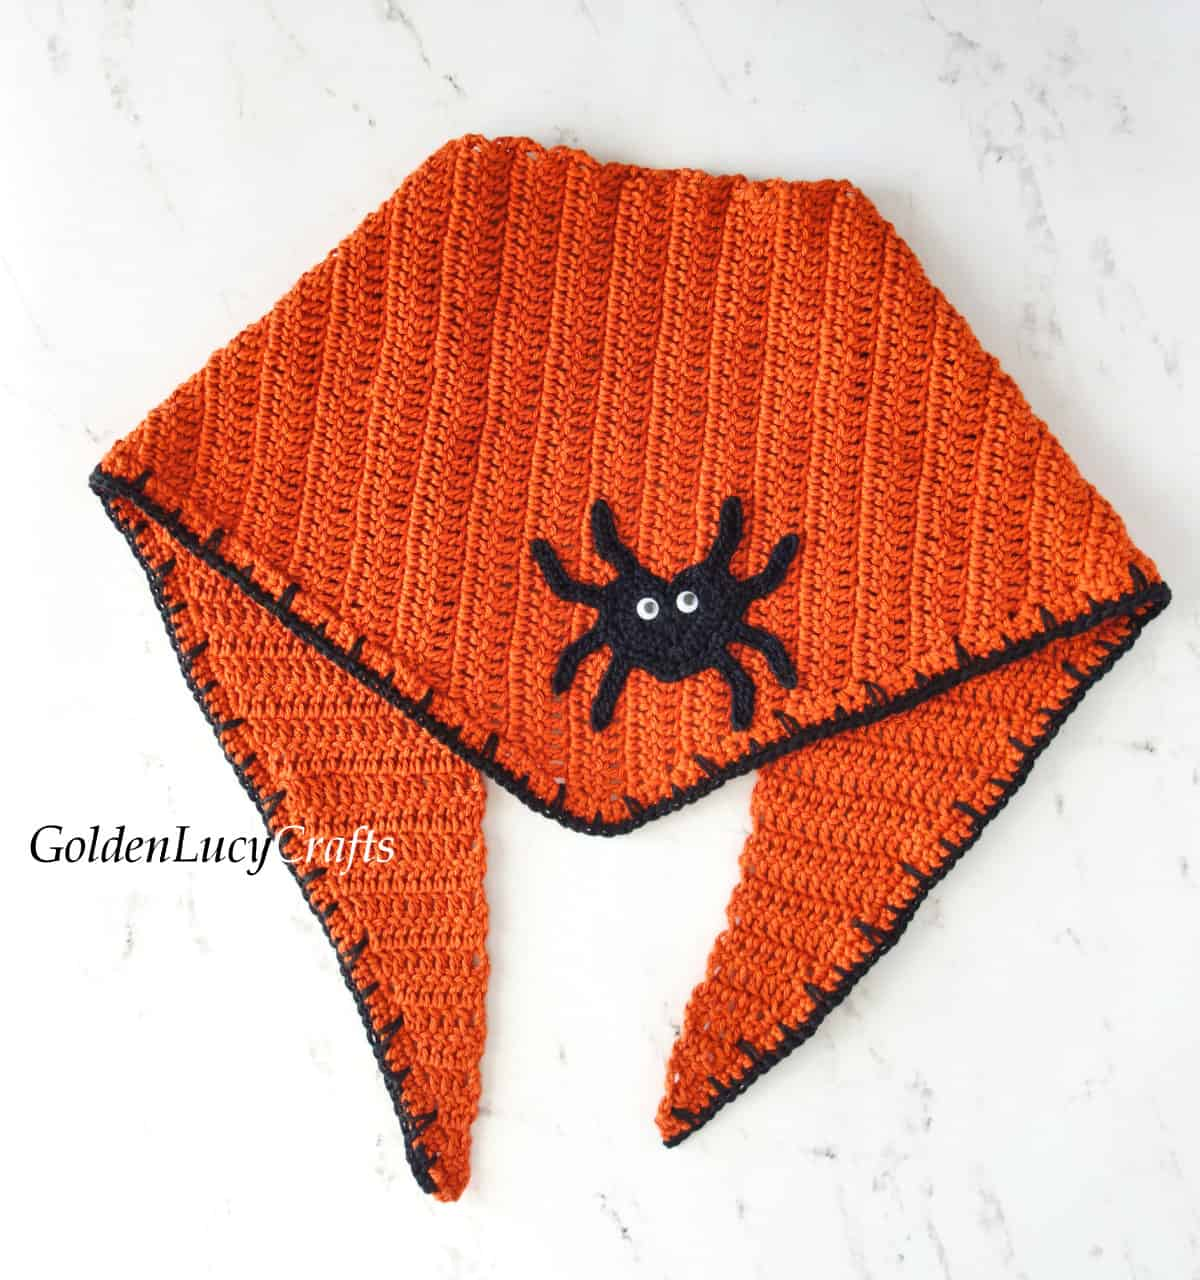 Crochet orange bandana embellished with spider applique.